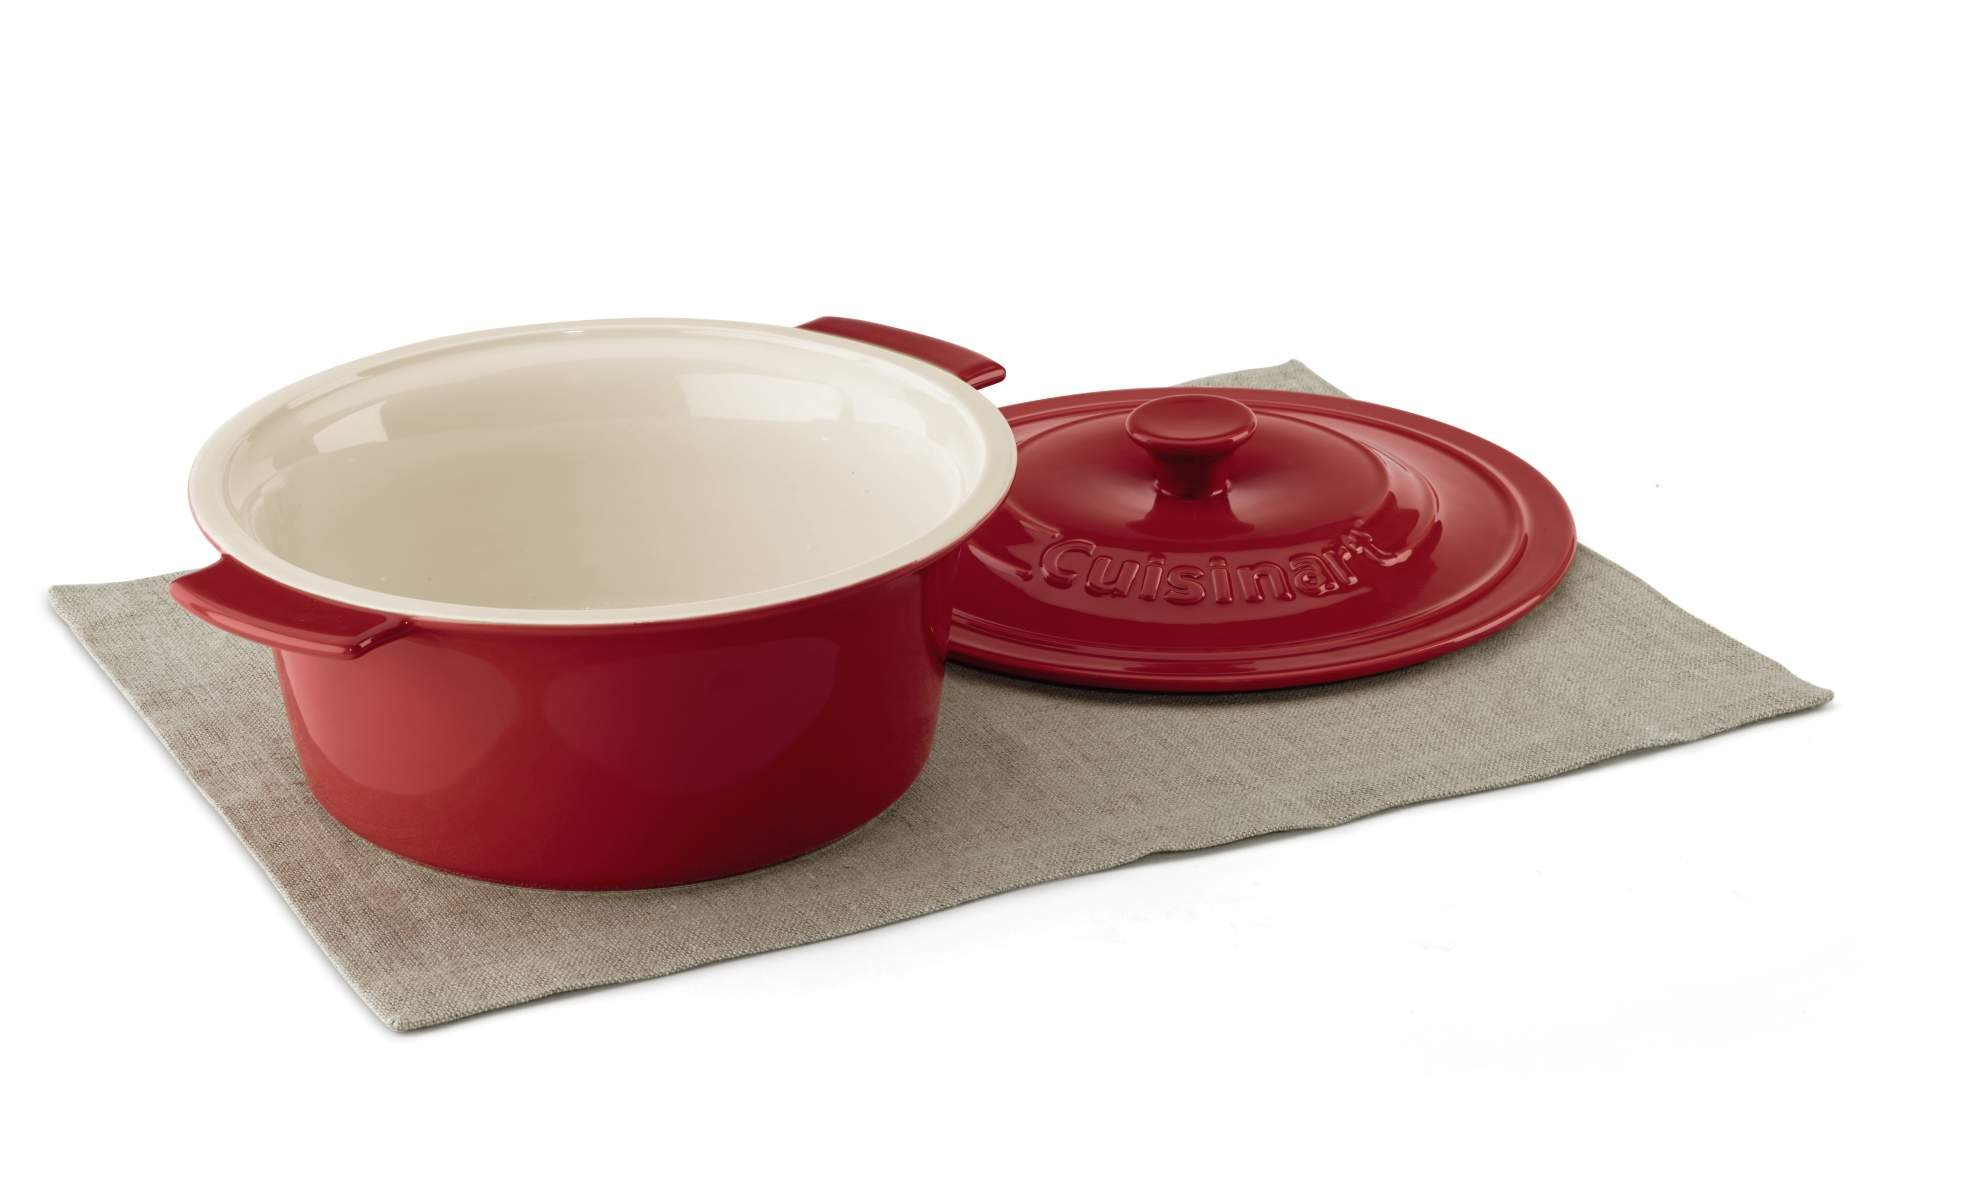 Cuisinart CCB630-25R Chef's Classic Ceramic Bakeware-3 Quart Round Covered Baker, Red